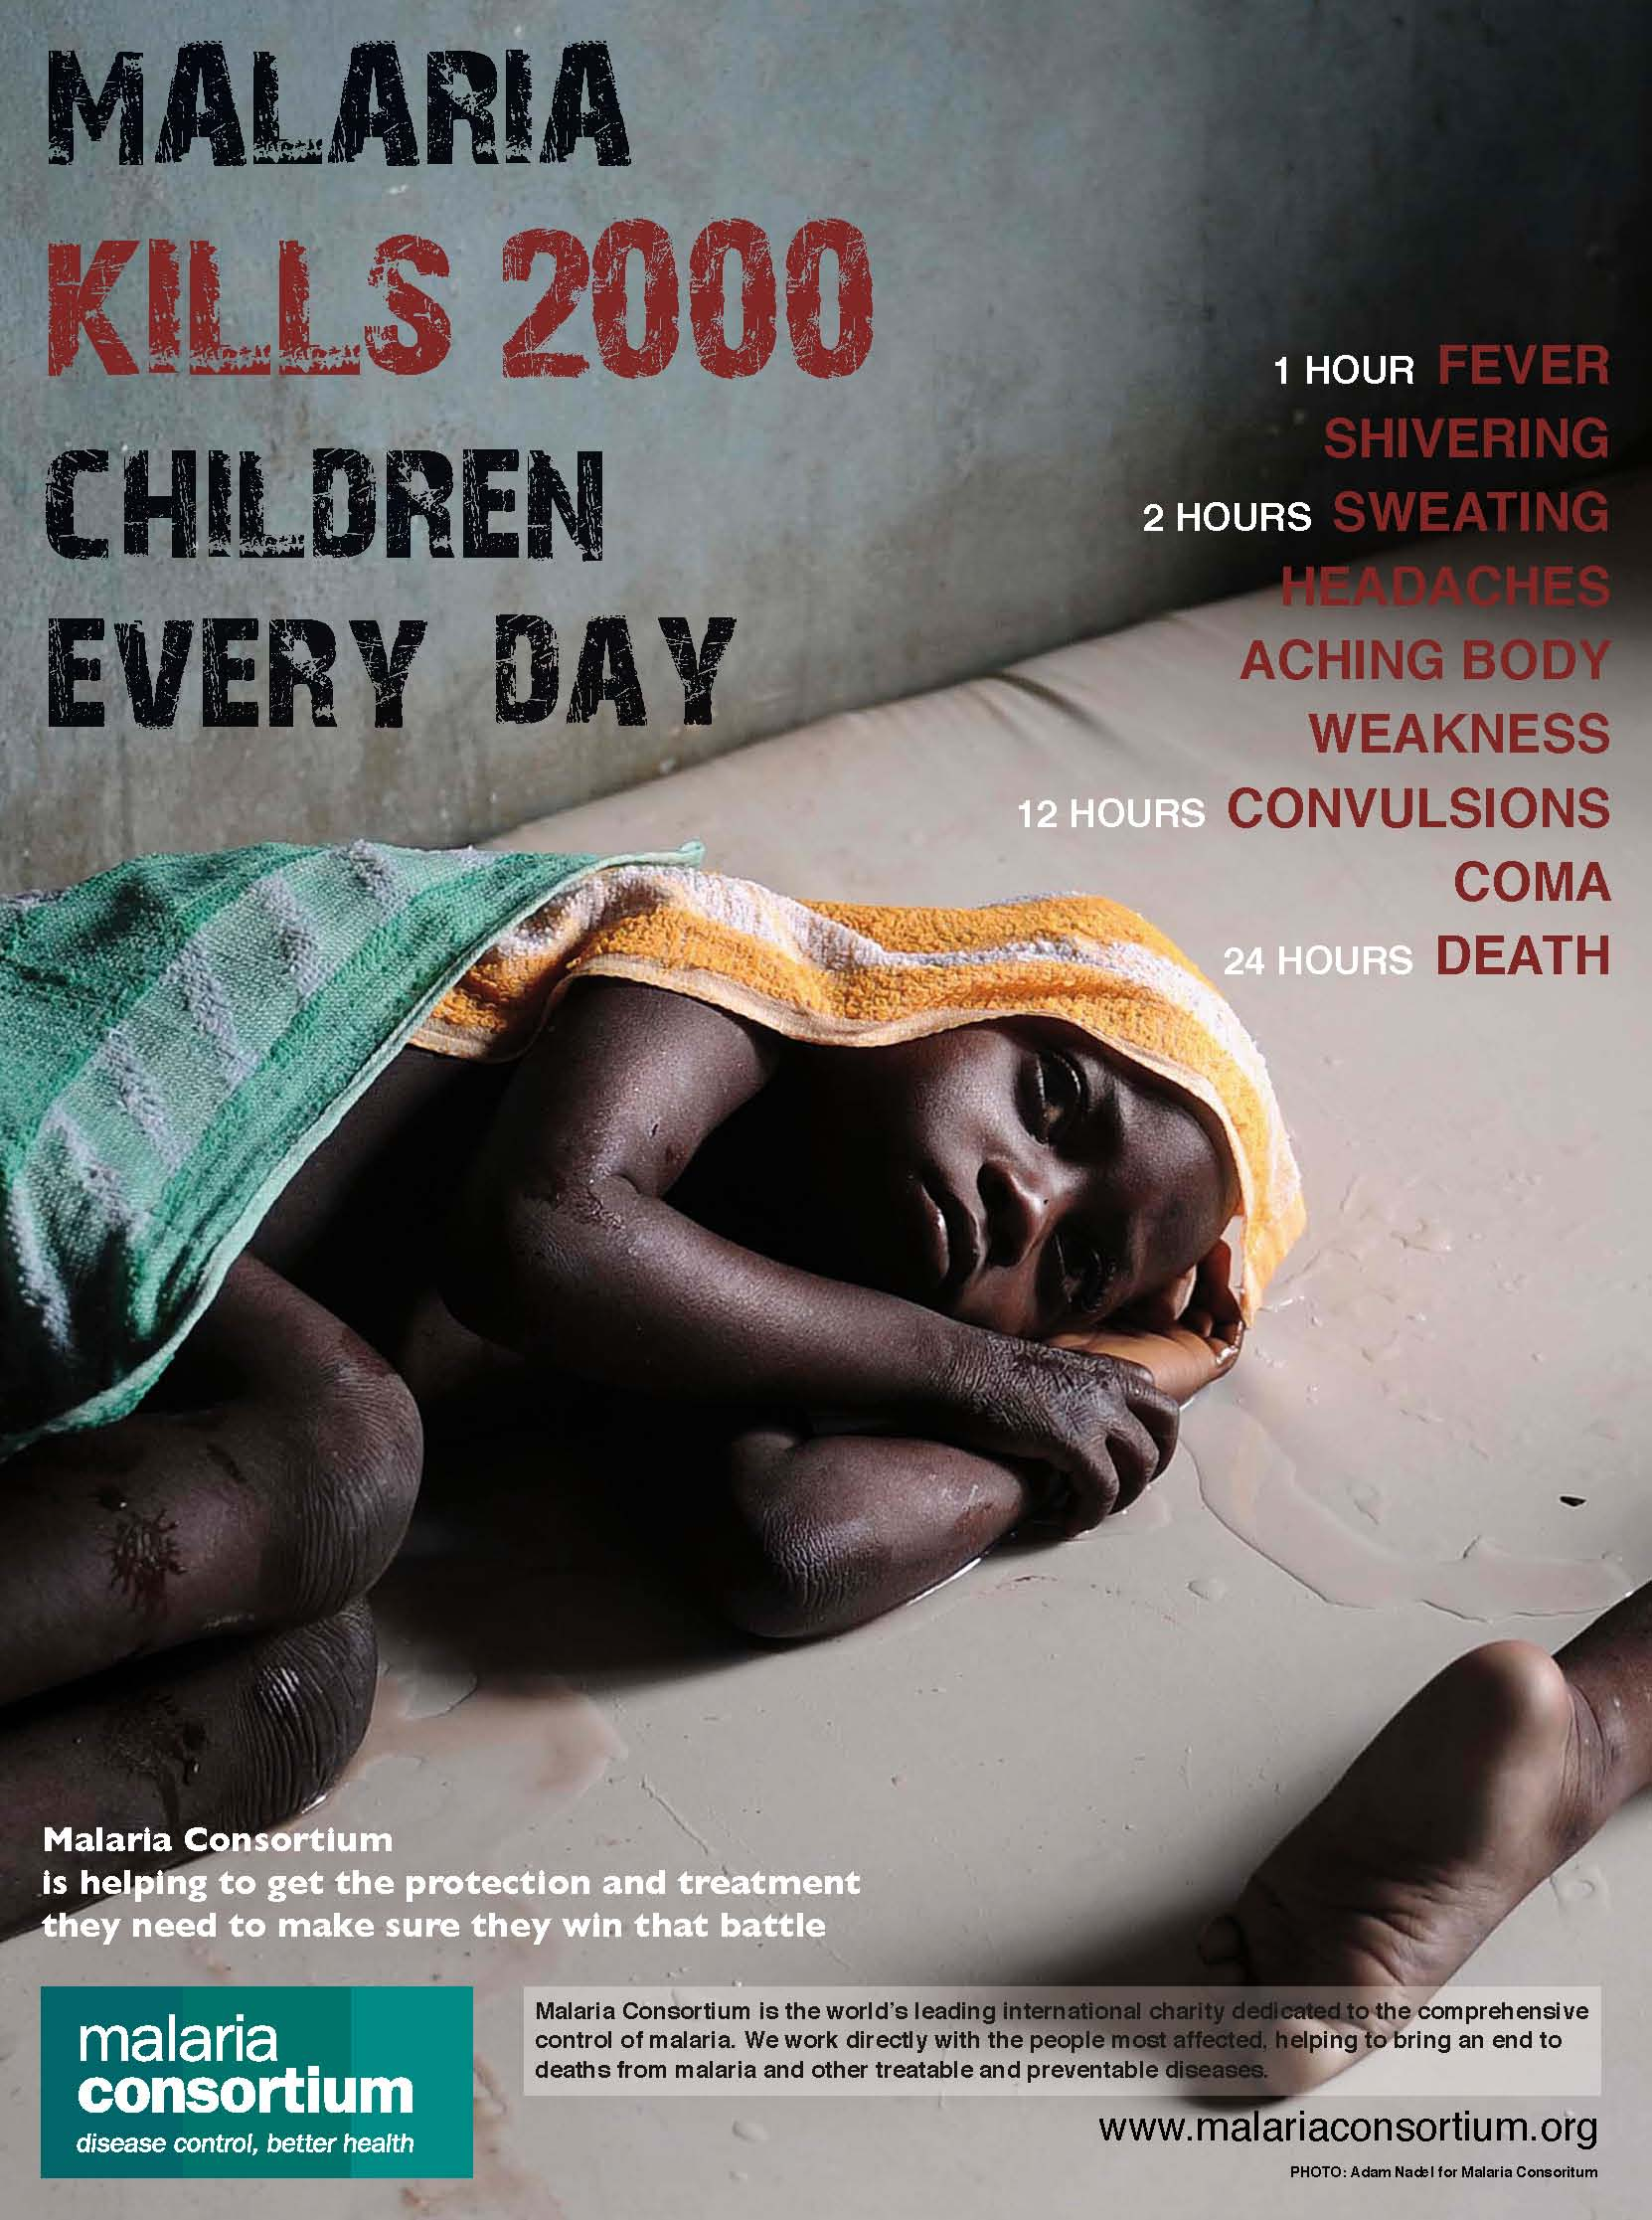 College Essay Paper Malaria Consortium Publishes Two New Advertisments Essays For High School Students To Read also Barack Obama Essay Paper Malaria Consortium  Disease Control Better Health  Adverts  High School And College Essay